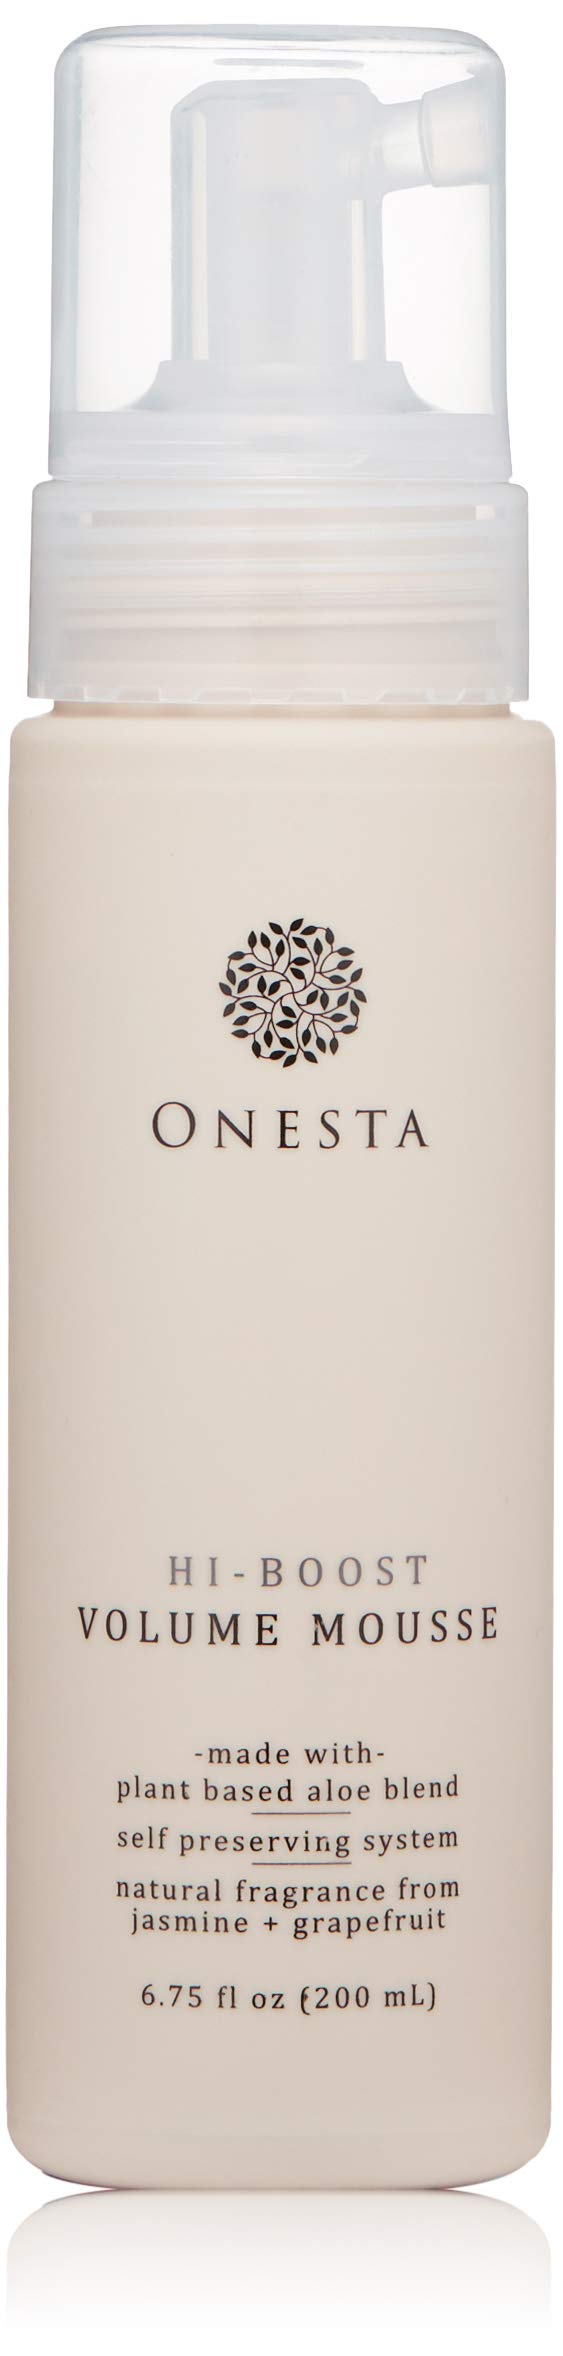 Onesta Hair Care Hi-Boost Volume and Shine Mousse, 6.75 oz, Aloe Juice, Green Tea, and Ginger Root